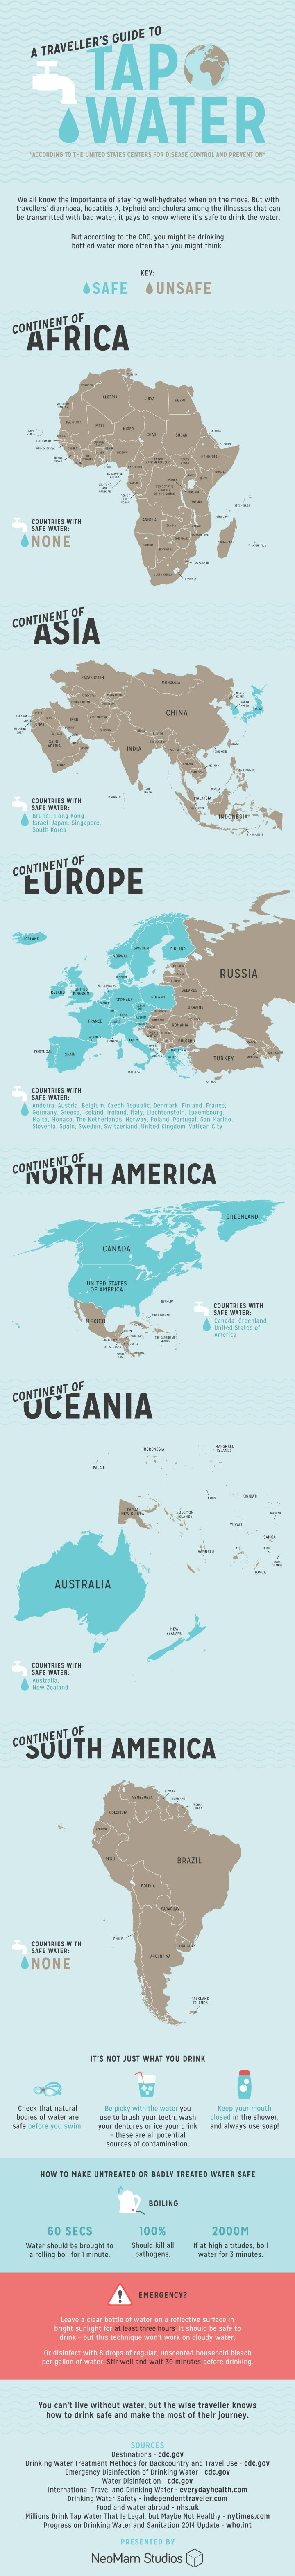 Know What Countries Guarantee Drinkable Tap Water with This Graphic